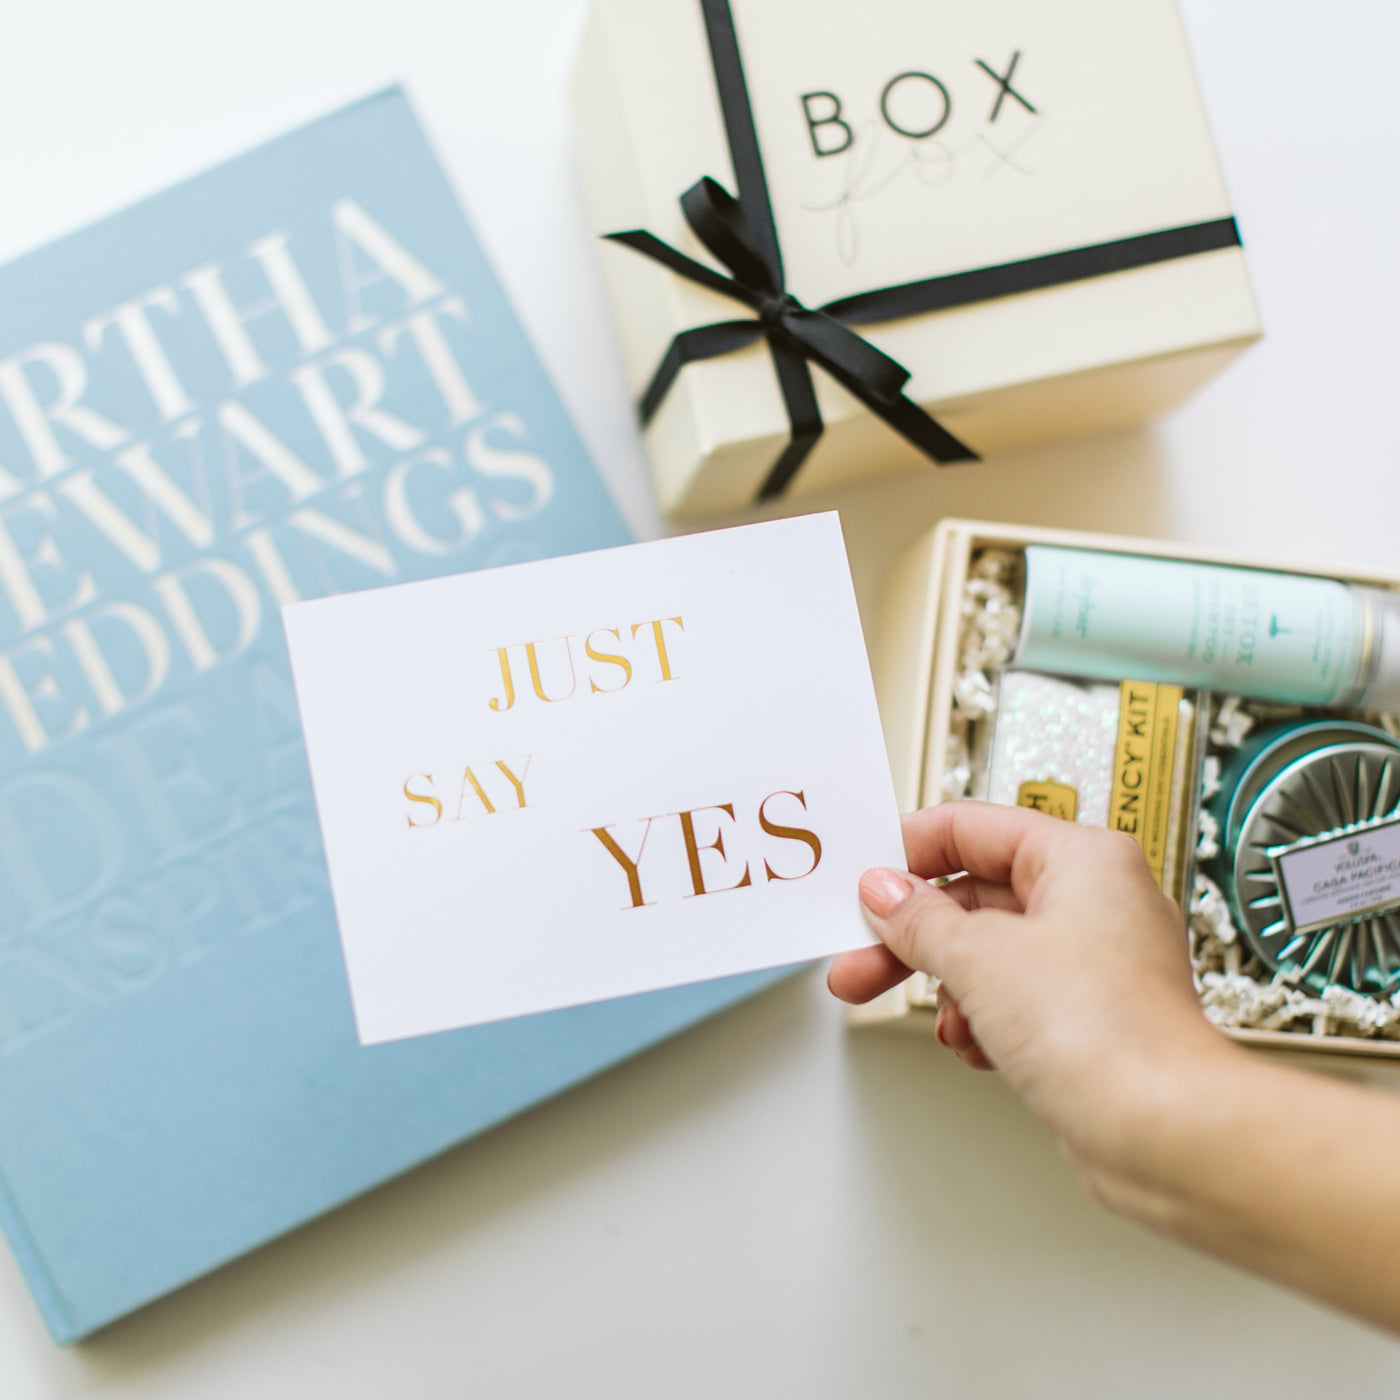 For The Bride Boxfox